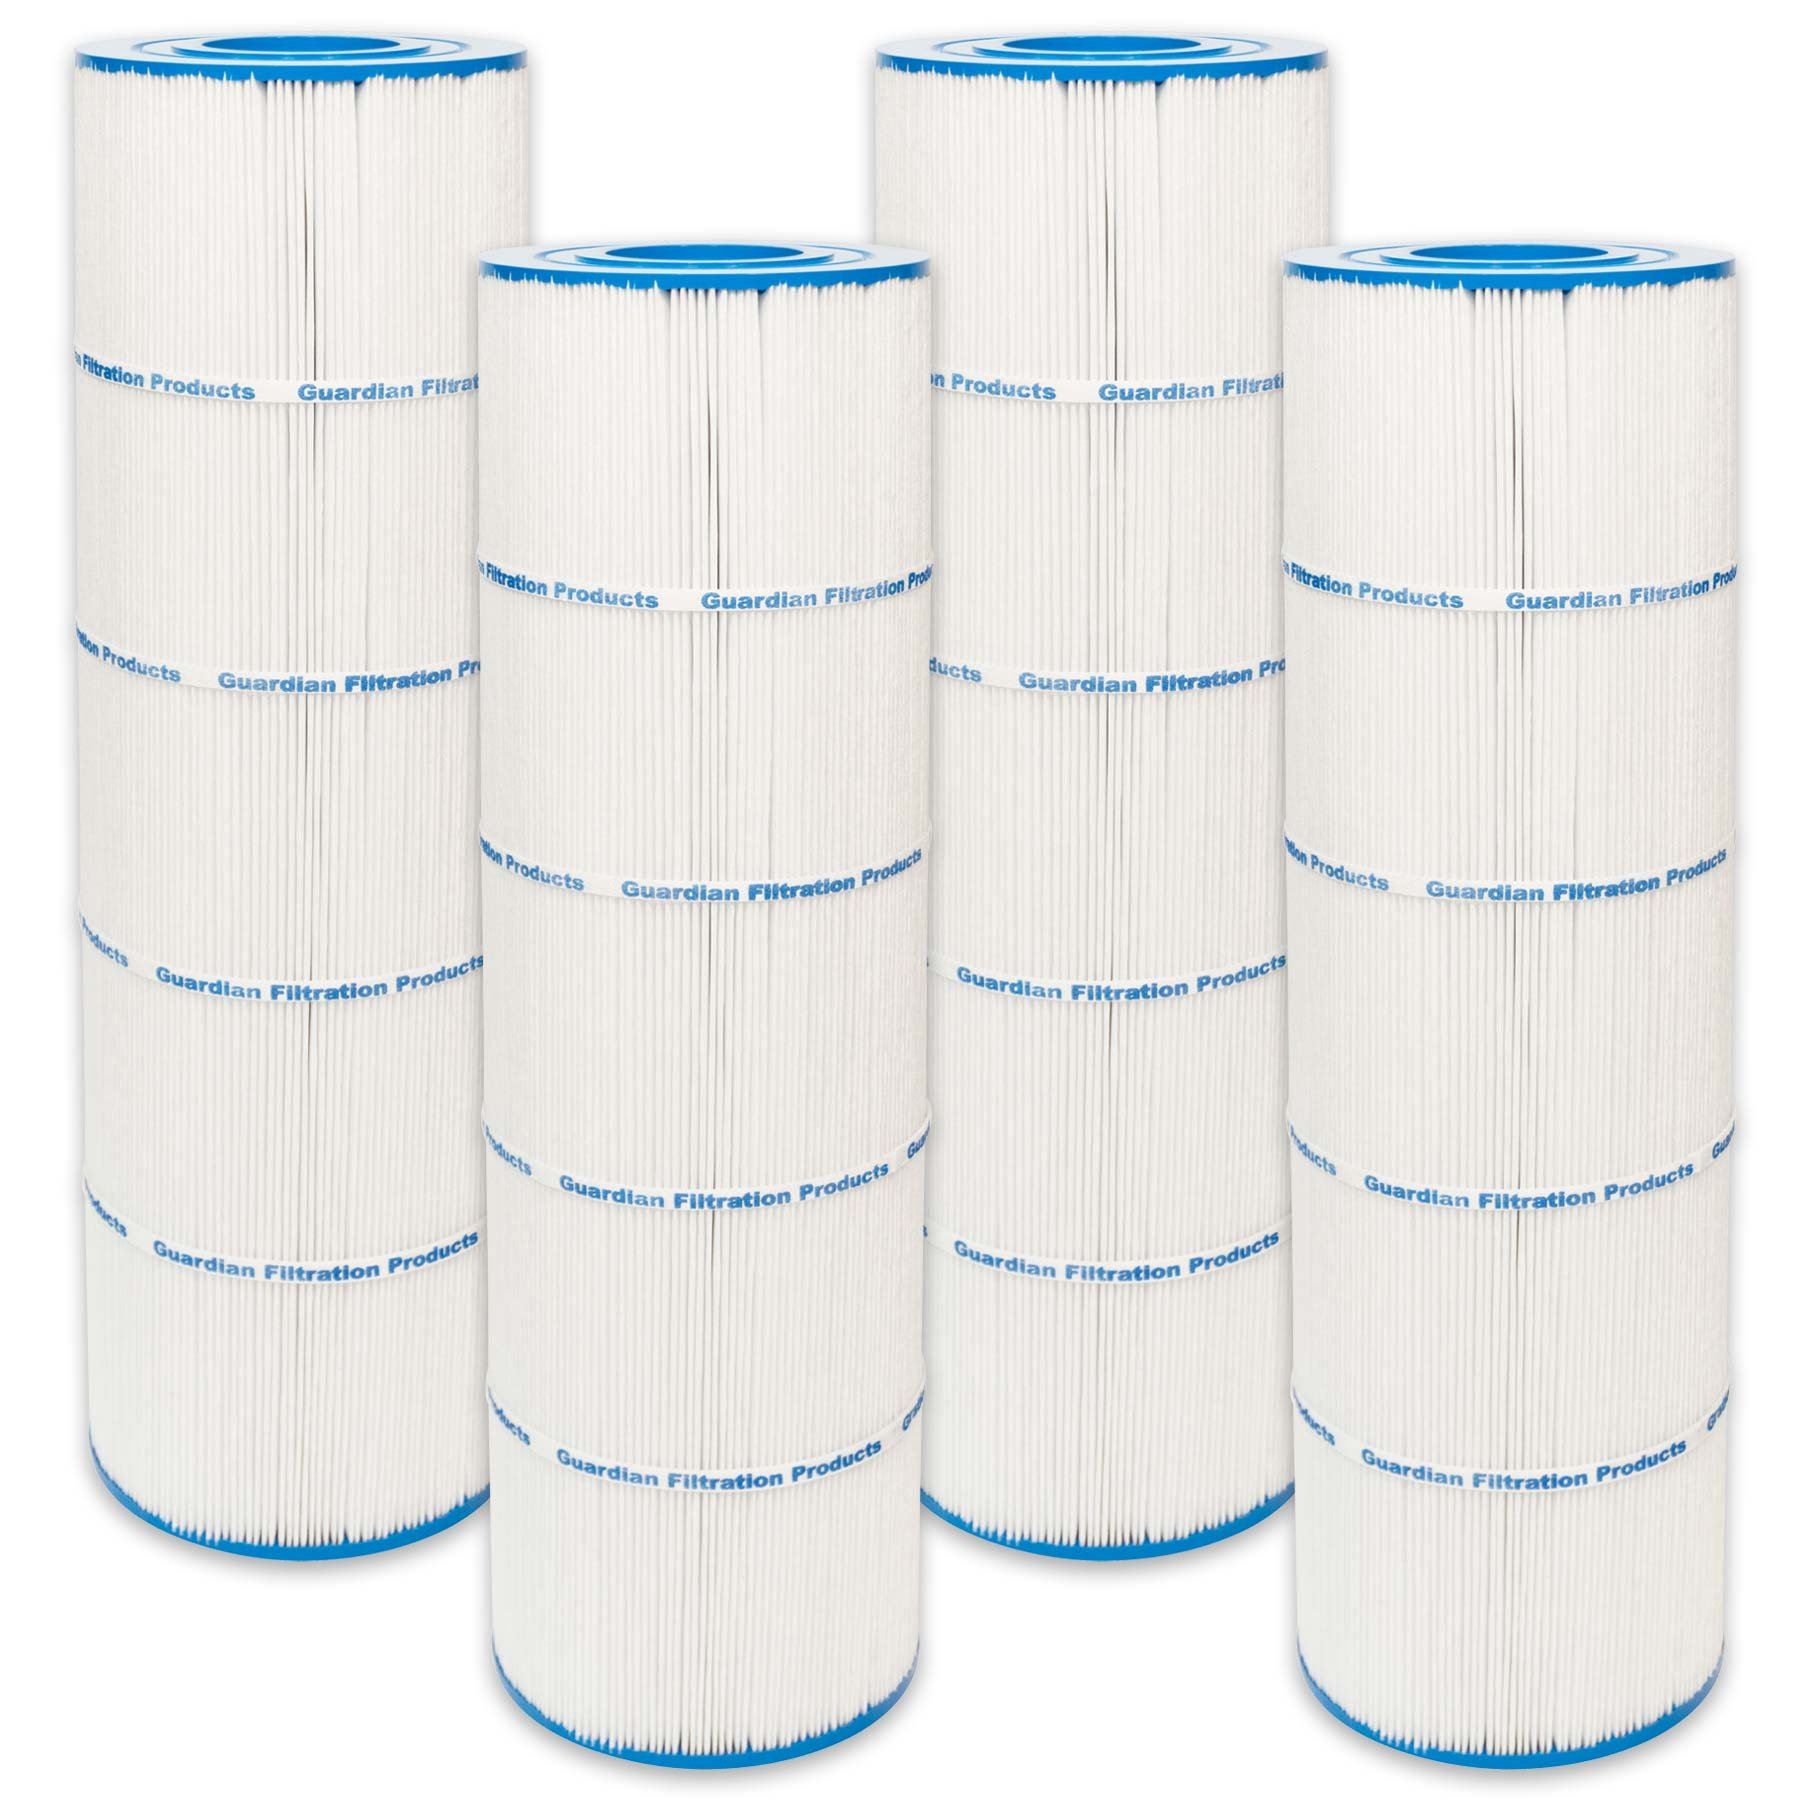 4 Guardian Pool Spa Filter Replaces PA100N, Unicel: C-7487, Filbur: FC-1270, CX870-XRE, C4000 Hayward by Guardian Filtration Products